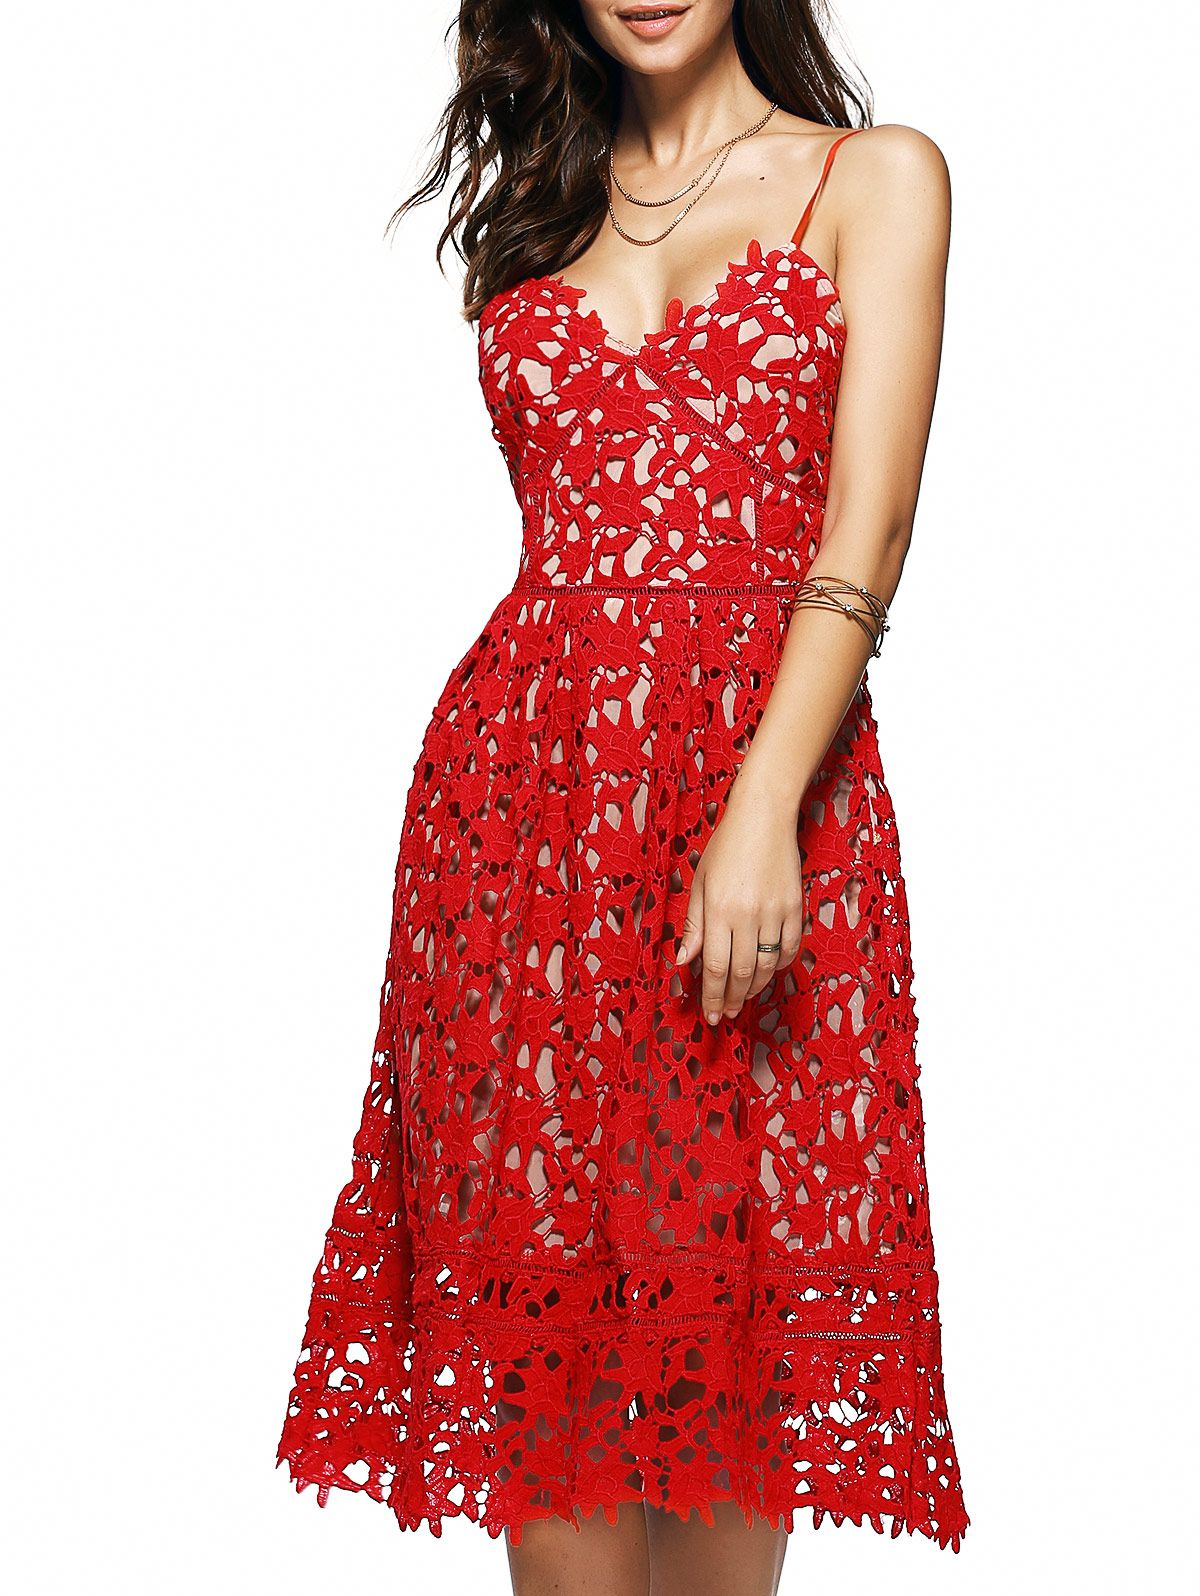 68894caf92 Spaghetti Straps Cut Out Crochet Flower Dress RED: Lace Dresses | ZAFUL